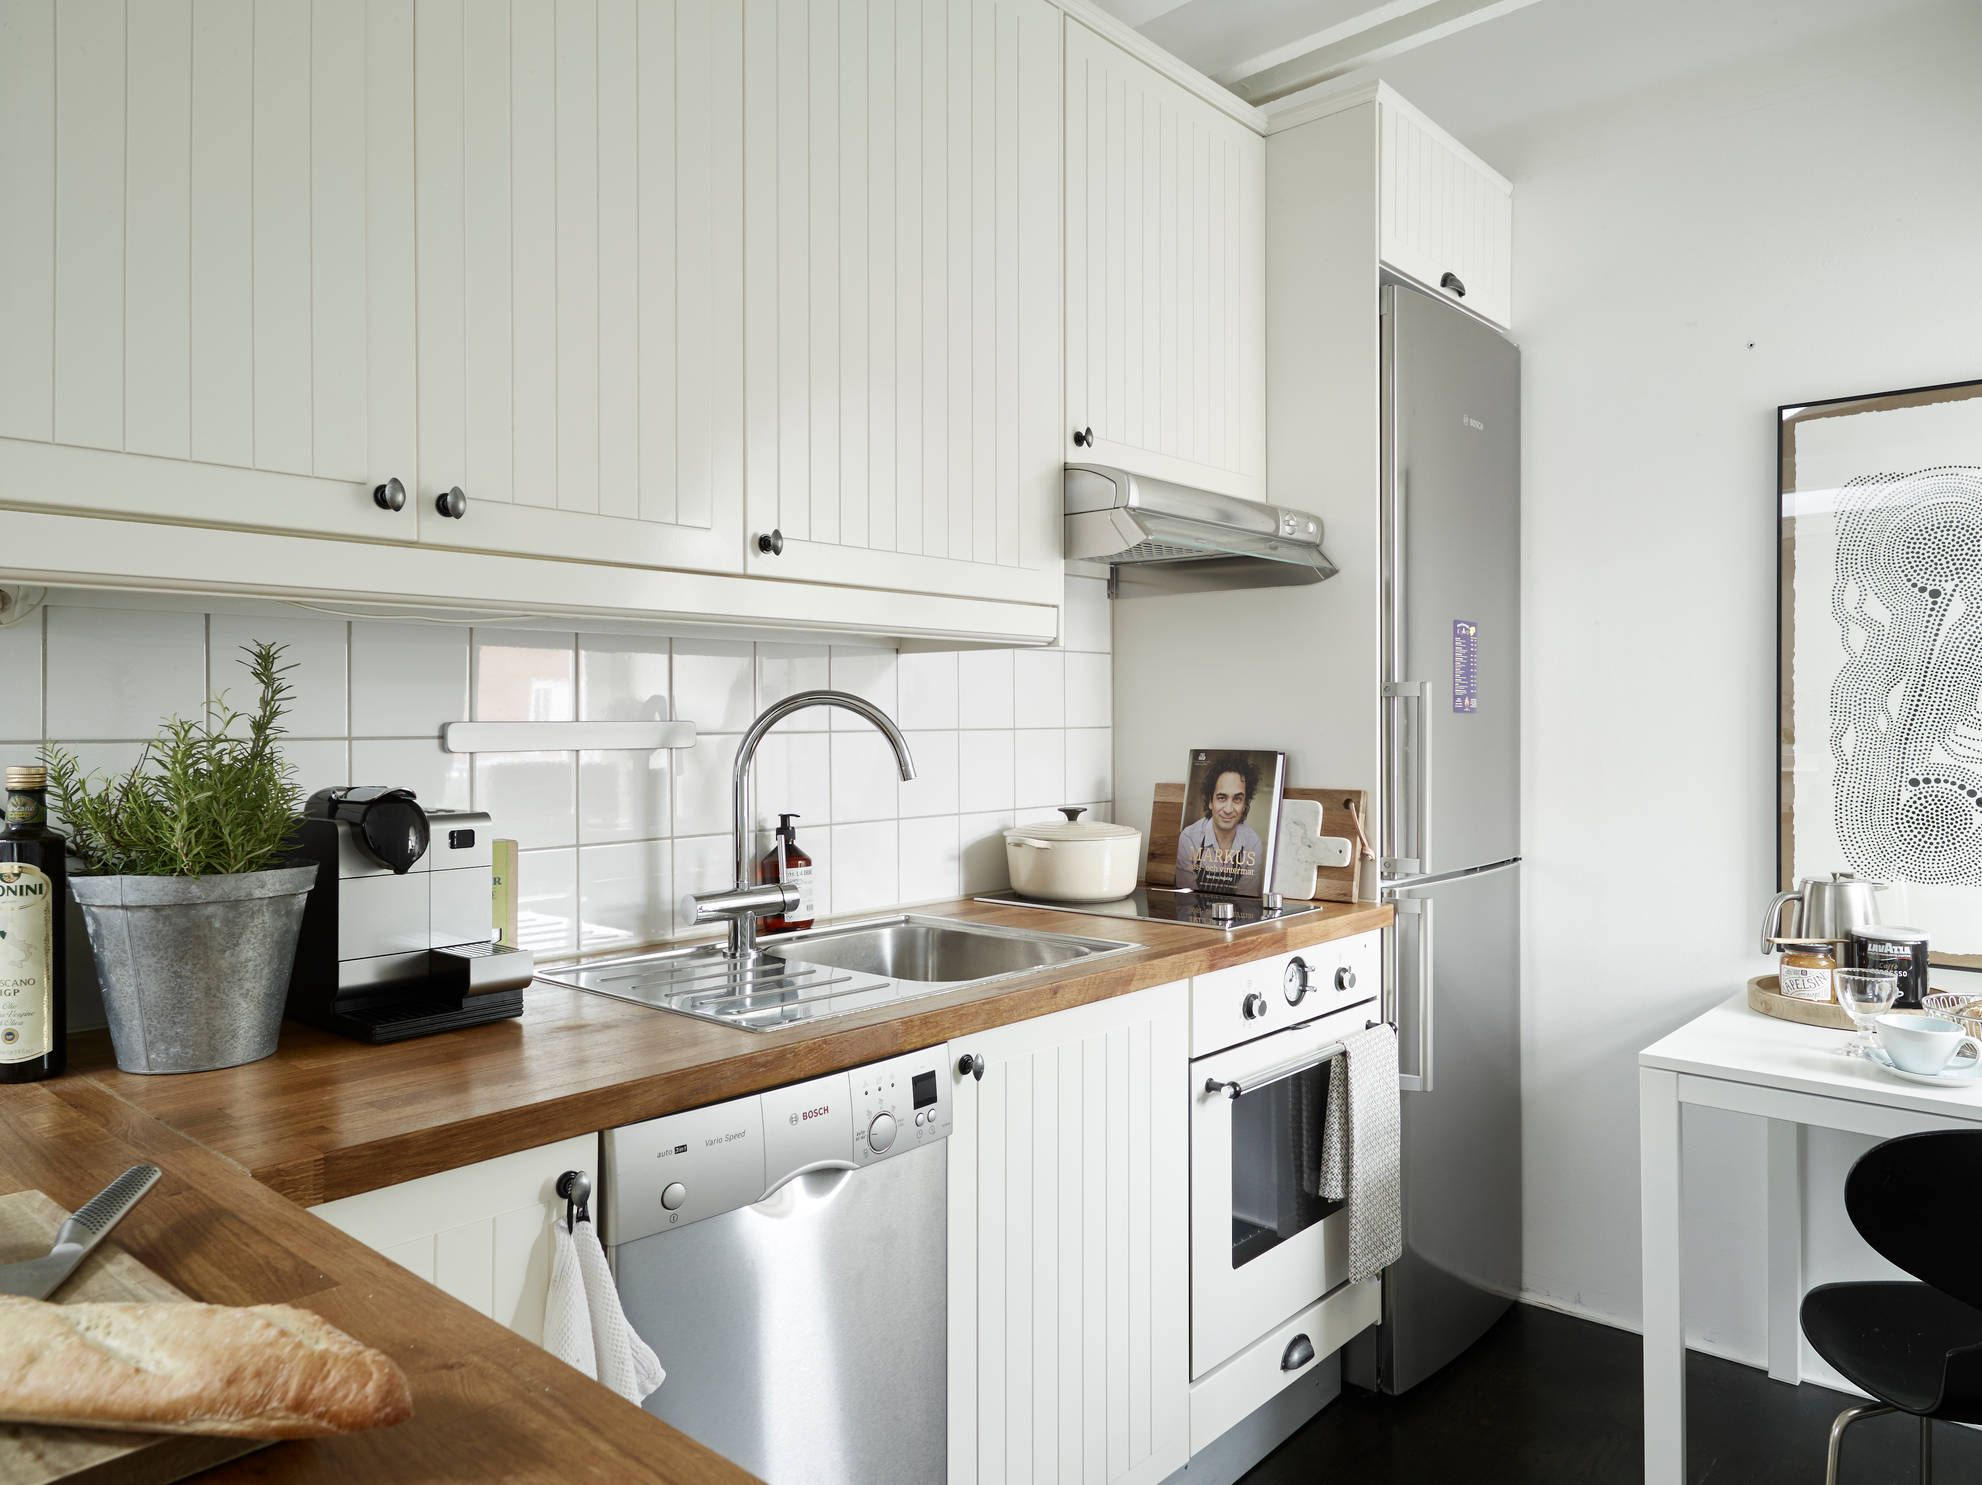 Supple Placing Appliances A Small You Need To To Avoid Clutterand Narrow Option Is Creating Small Kitchen Space Organizing Design Ideas Small Design Ideas kitchen Kitchen Furniture For Small Kitchen